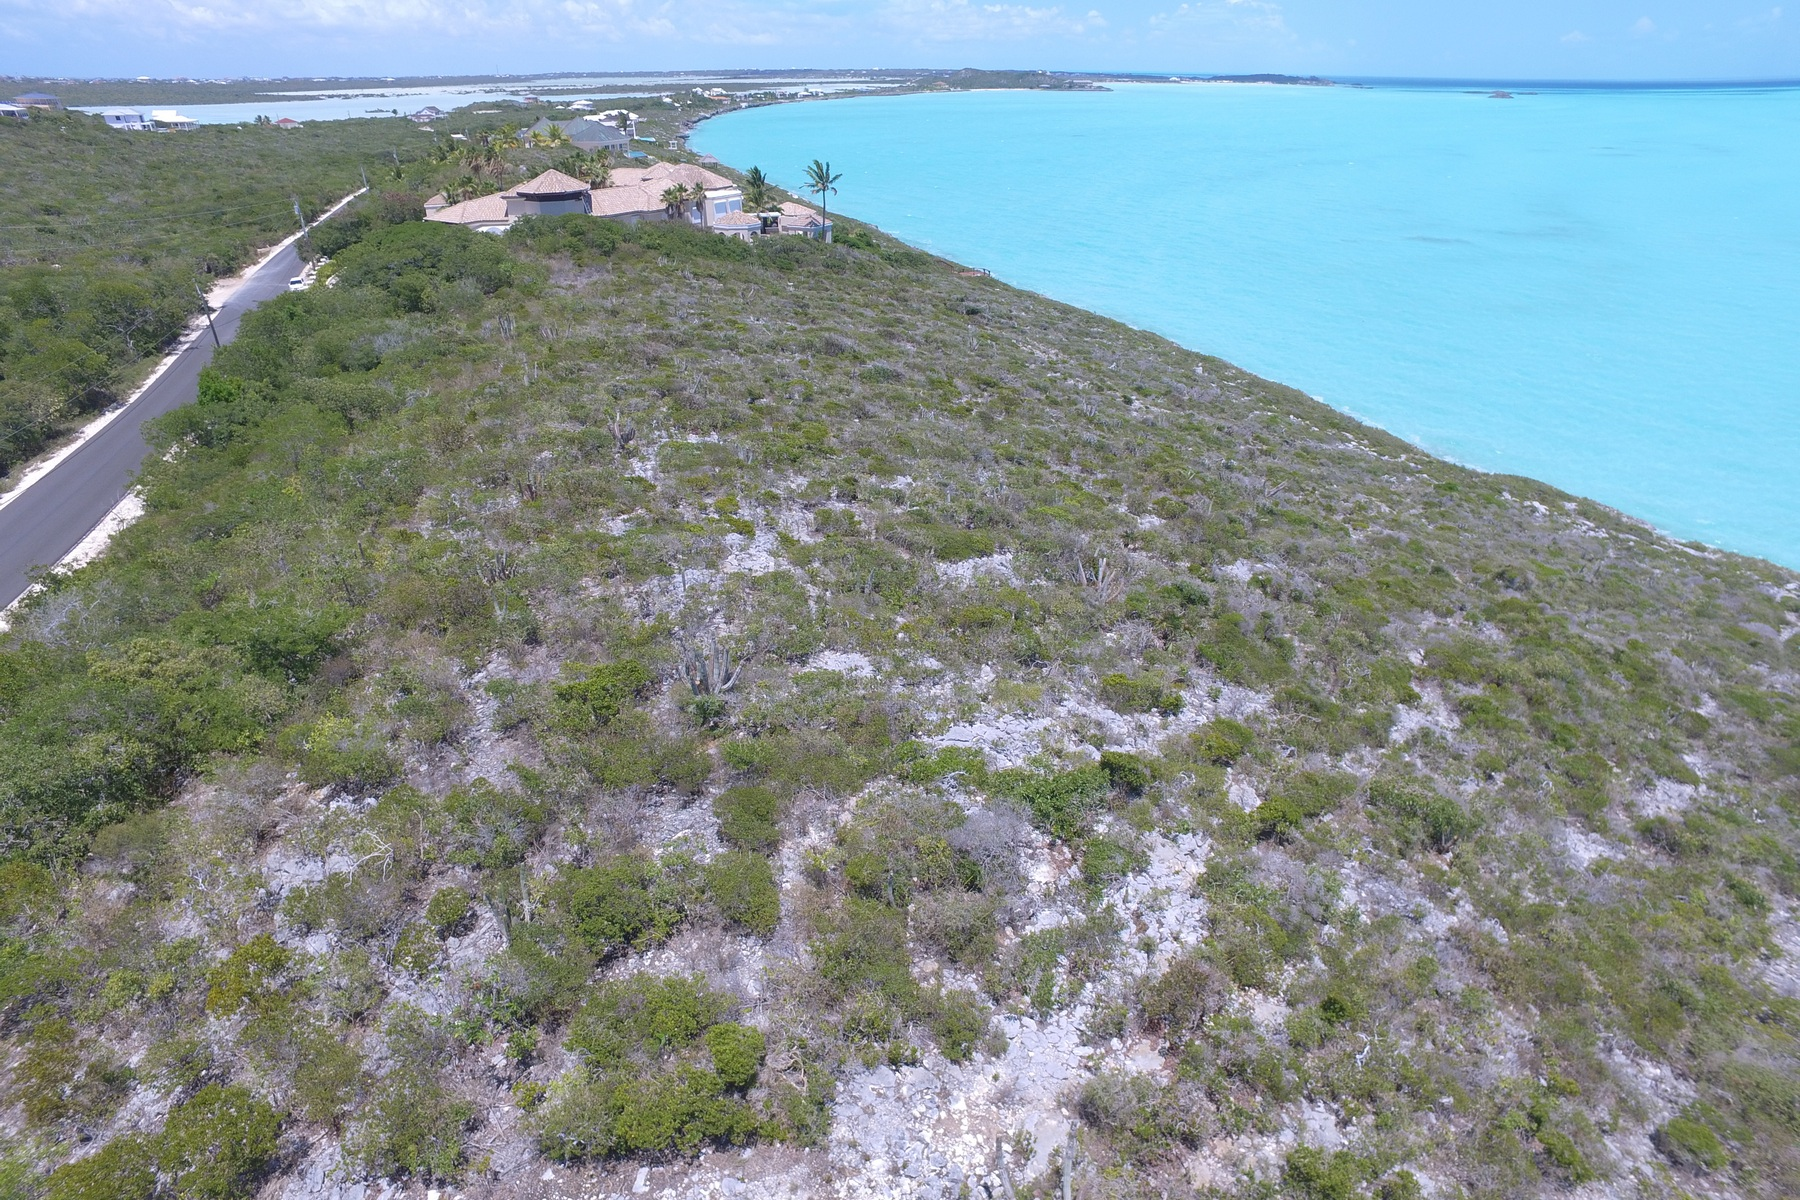 Land for Sale at STUNNING ELEVATED WATERFRONT LOT Turtle Tail, Turks And Caicos Islands